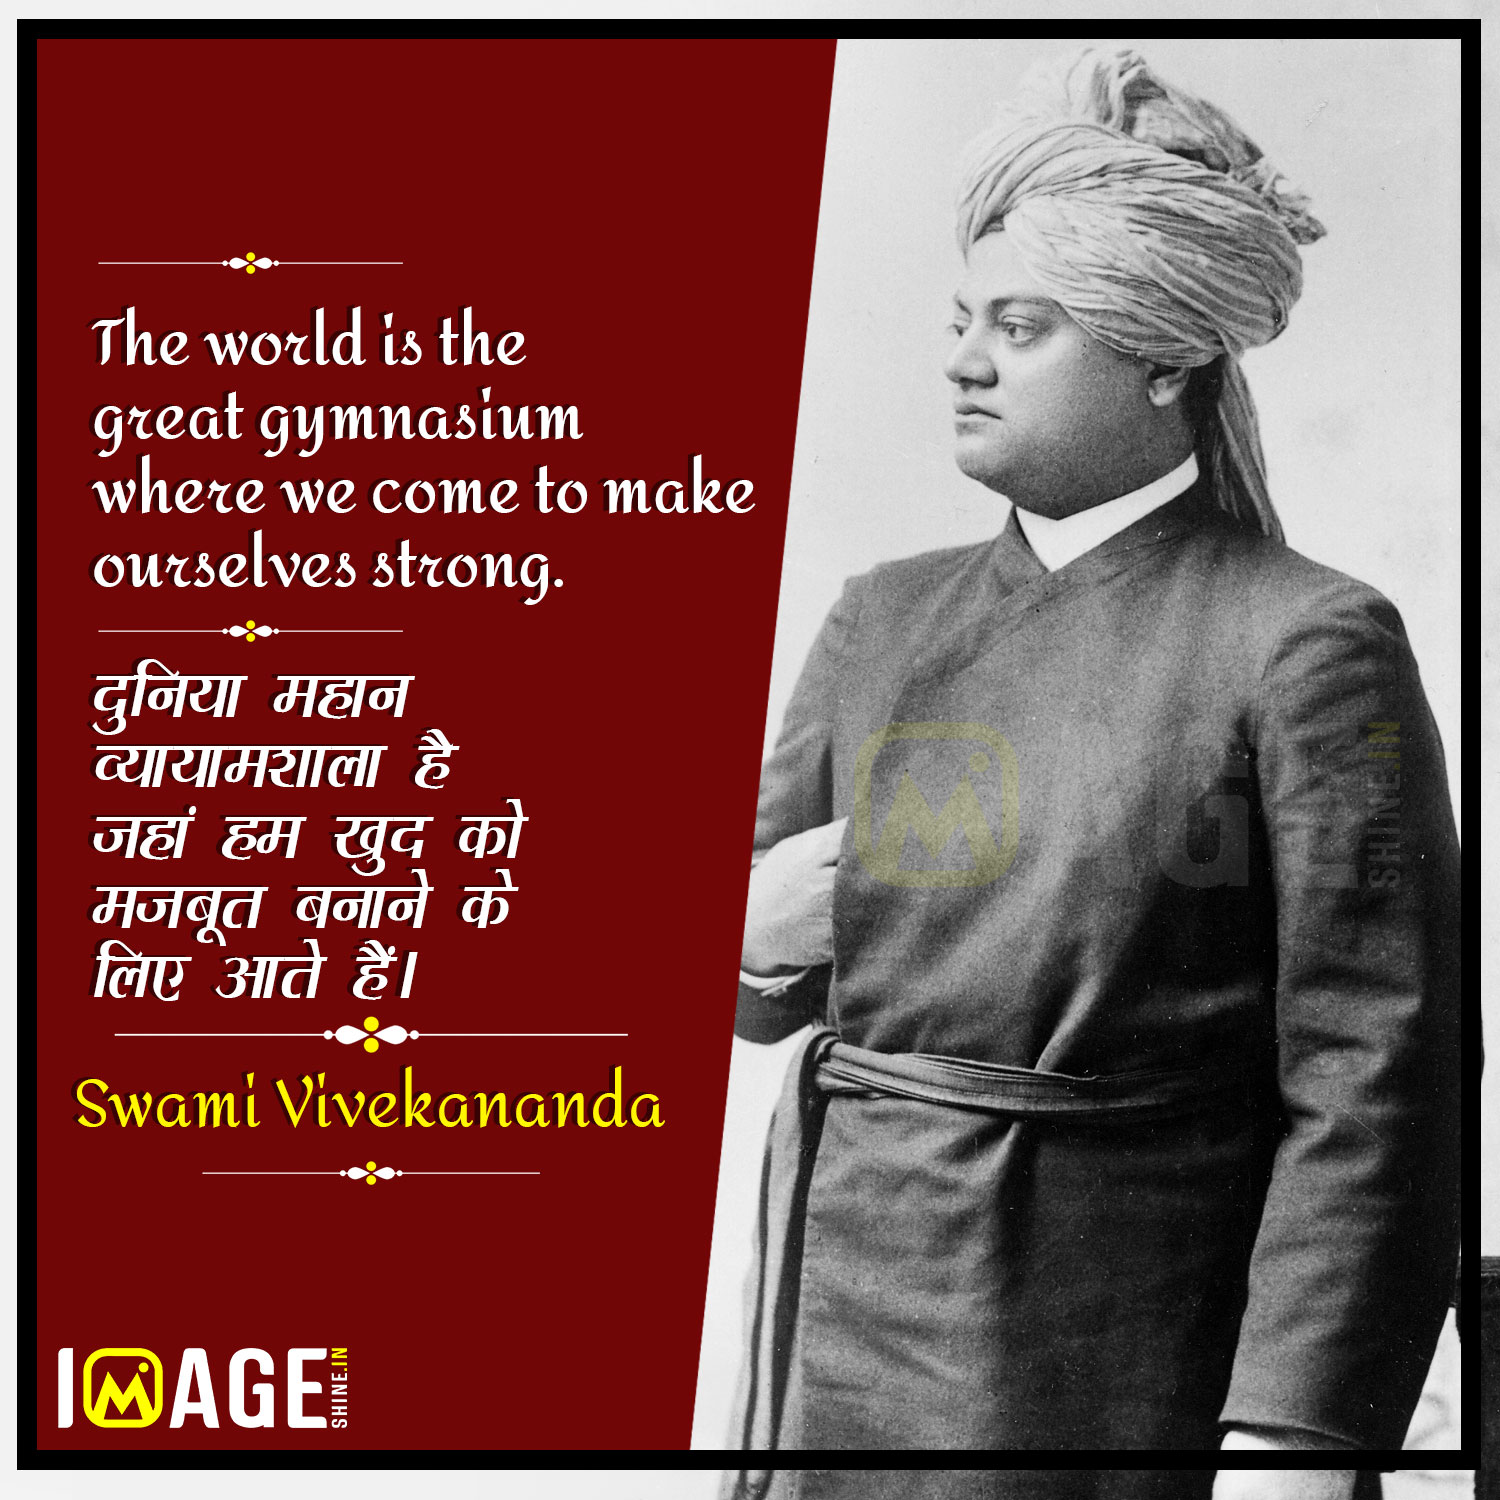 vivekananda quote in english